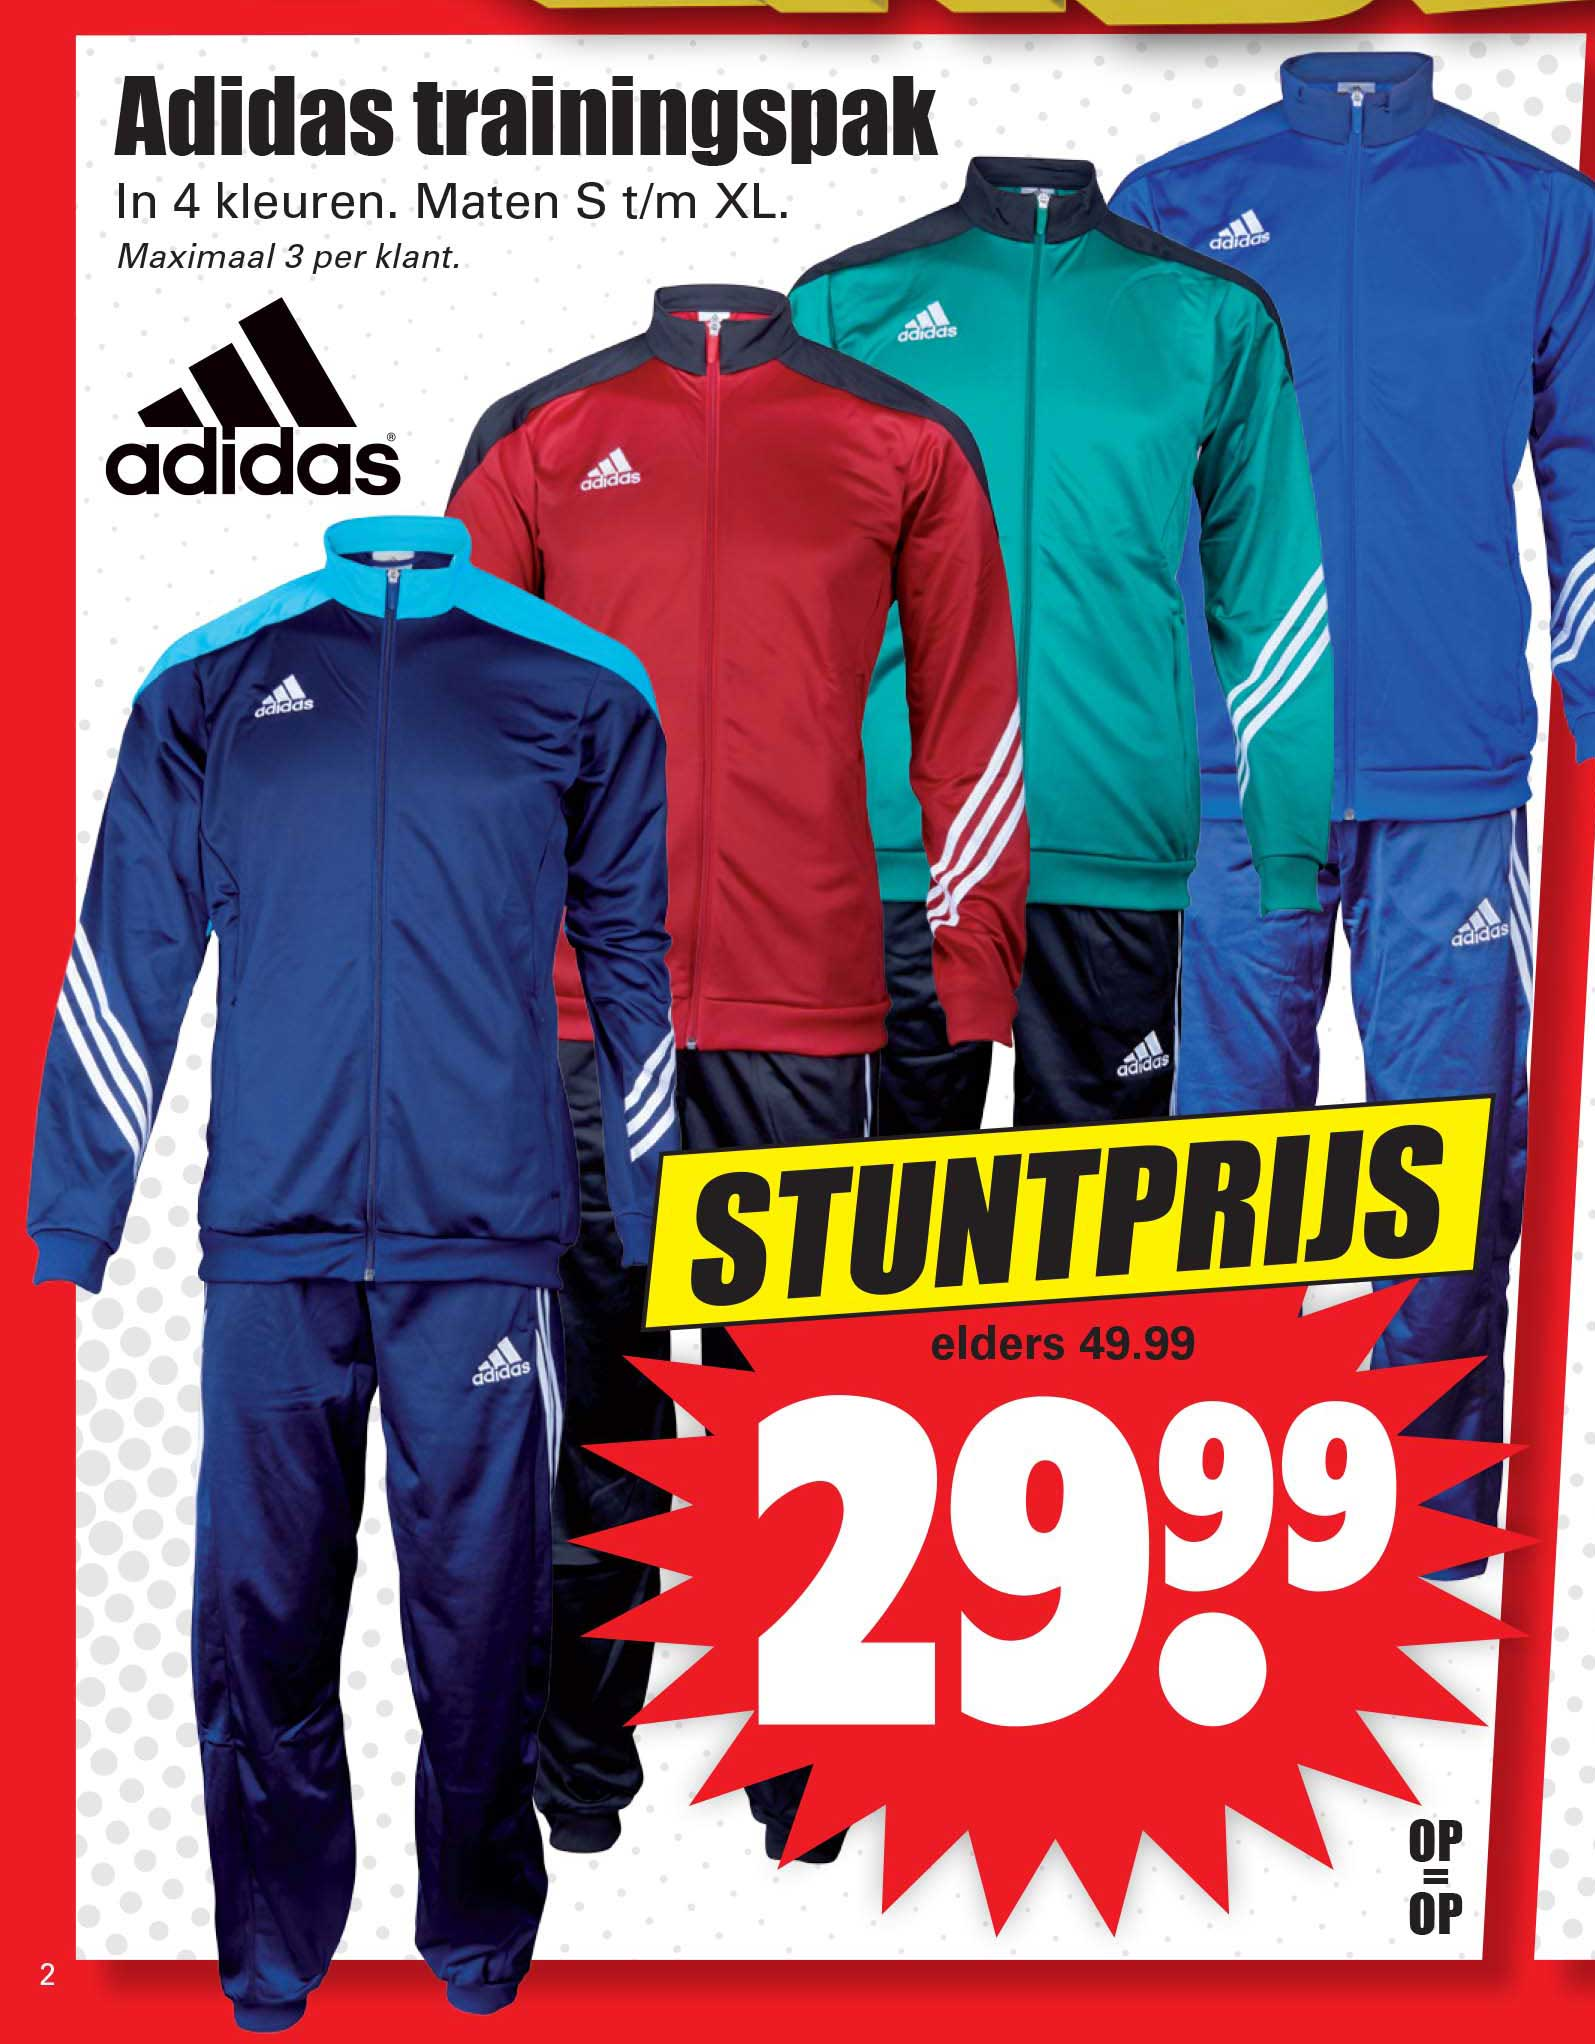 Limited Time Deals New Deals Everyday Adidas Trainingspak Kind Aanbieding Off 79 Buy